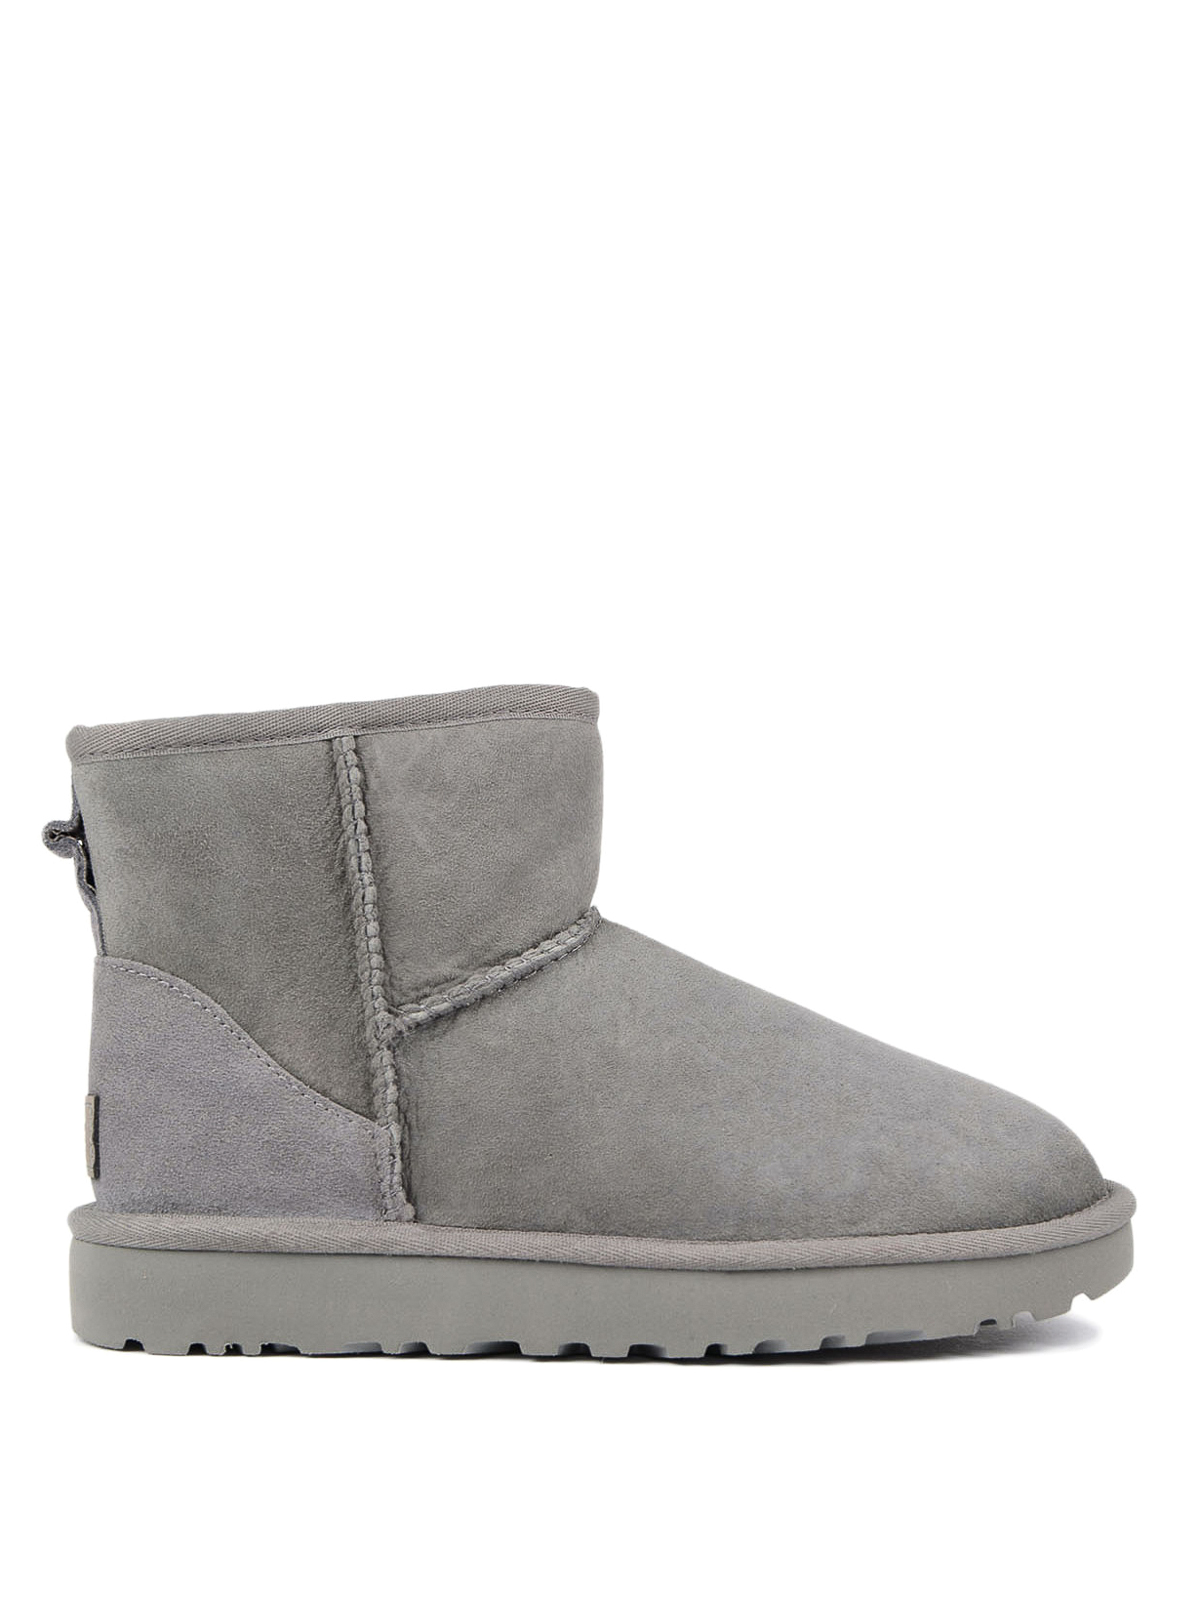 b3fb898ea85 Ugg Classic Mini Ankle Boots Grey - cheap watches mgc-gas.com